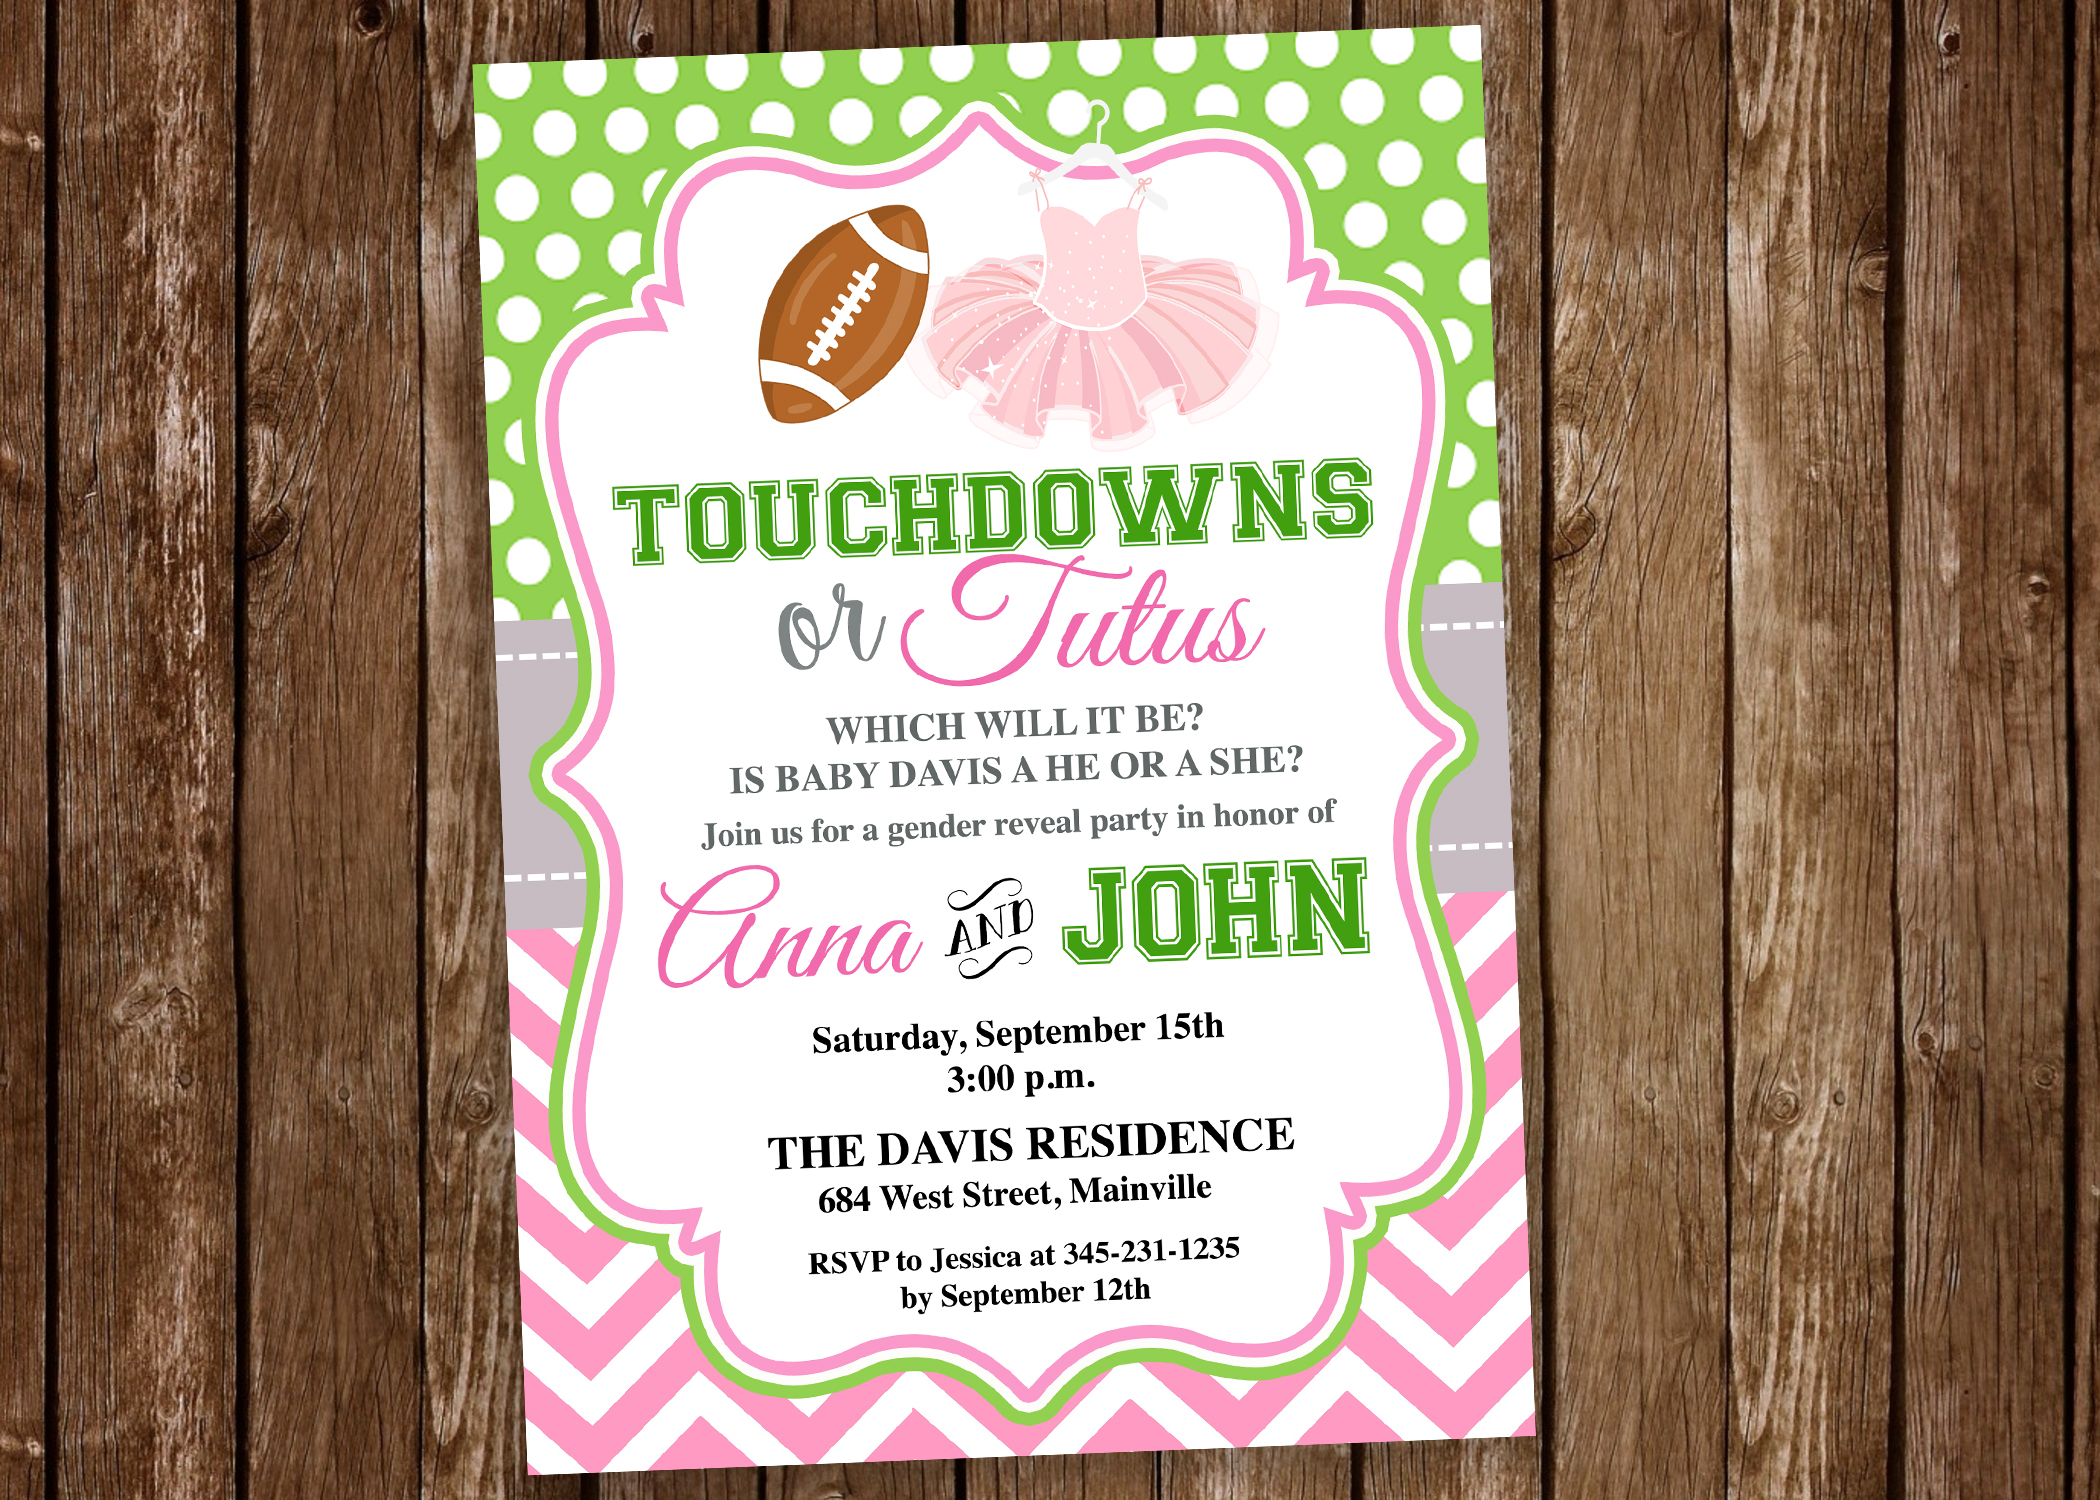 Touchdowns Or Tutus Gender Reveal Invitation Football Tutu Boy Girl Party Baby Shower